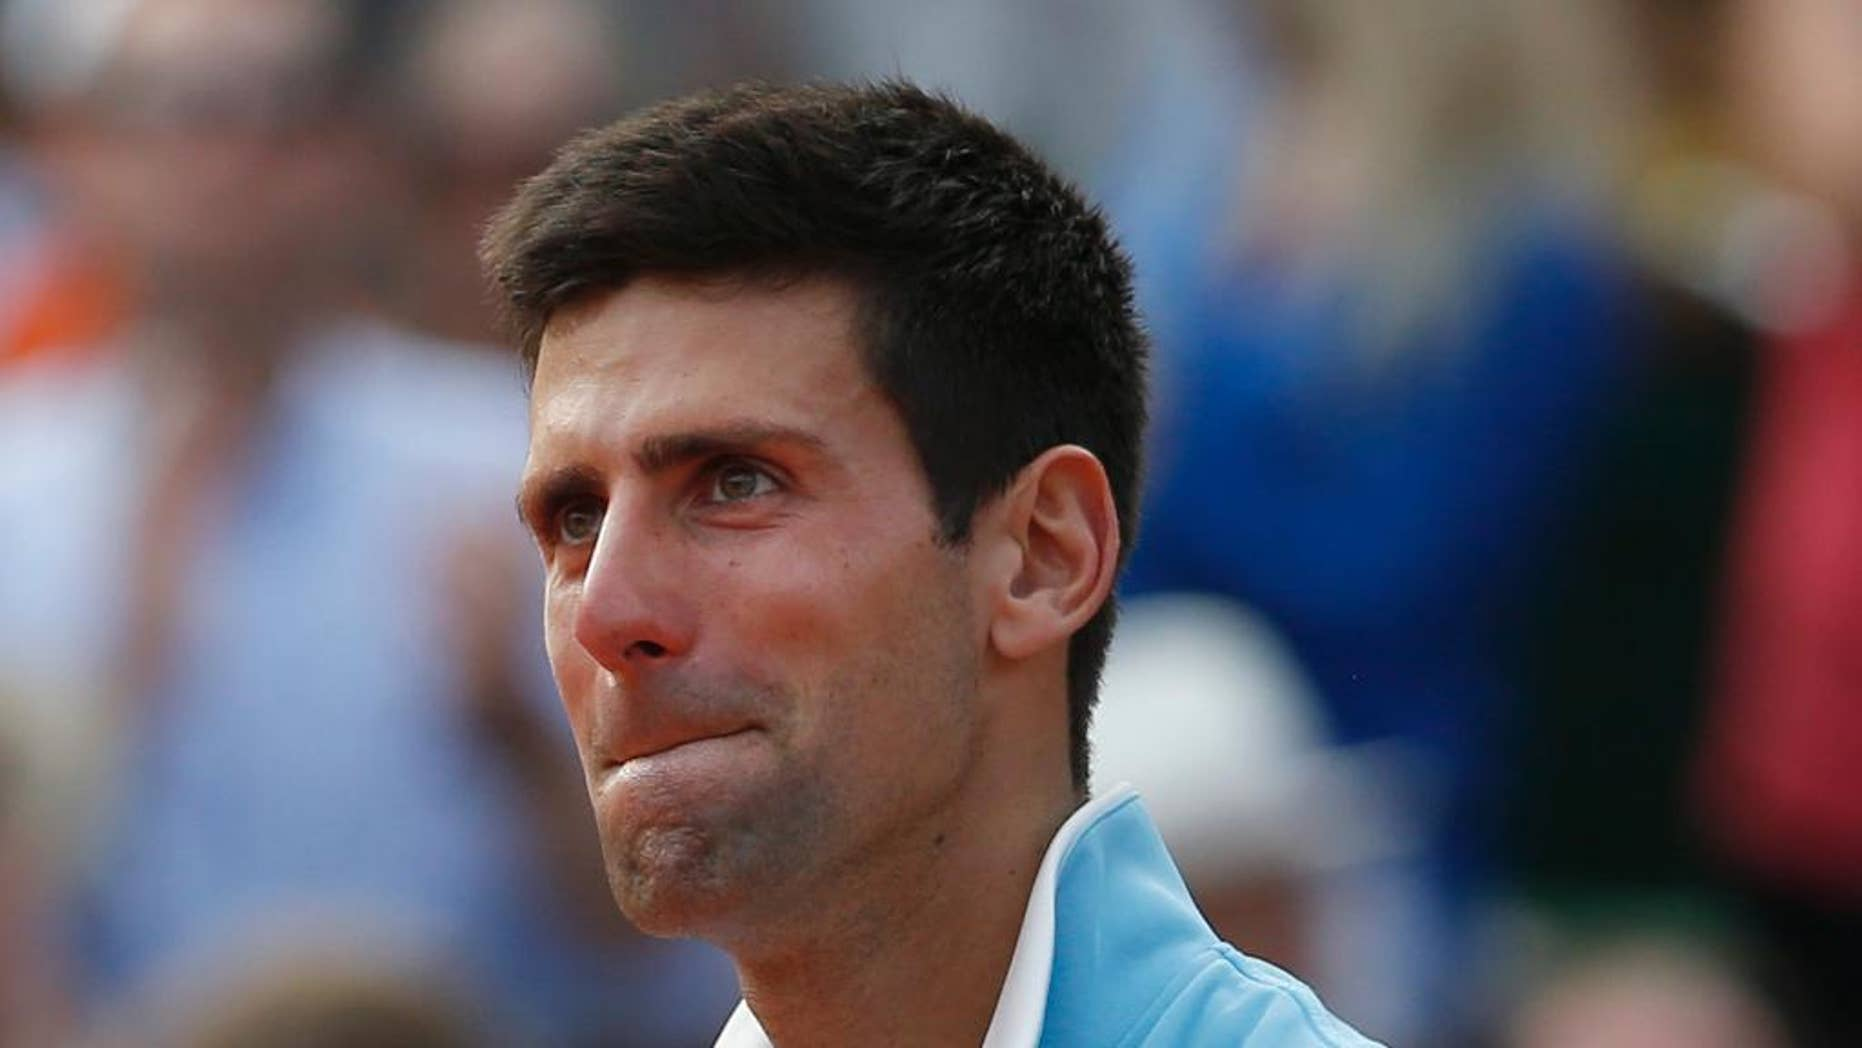 Serbia's Novak Djokovic holds the runner-up trophy after losing the final of the French Open tennis tournament against Spain's Rafael Nadal at the Roland Garros stadium, in Paris, France, Sunday, June 8, 2014. Nadal won in four sets 3-6, 7-5, 6-2, 6-4. (AP Photo/Darko Vojinovic)